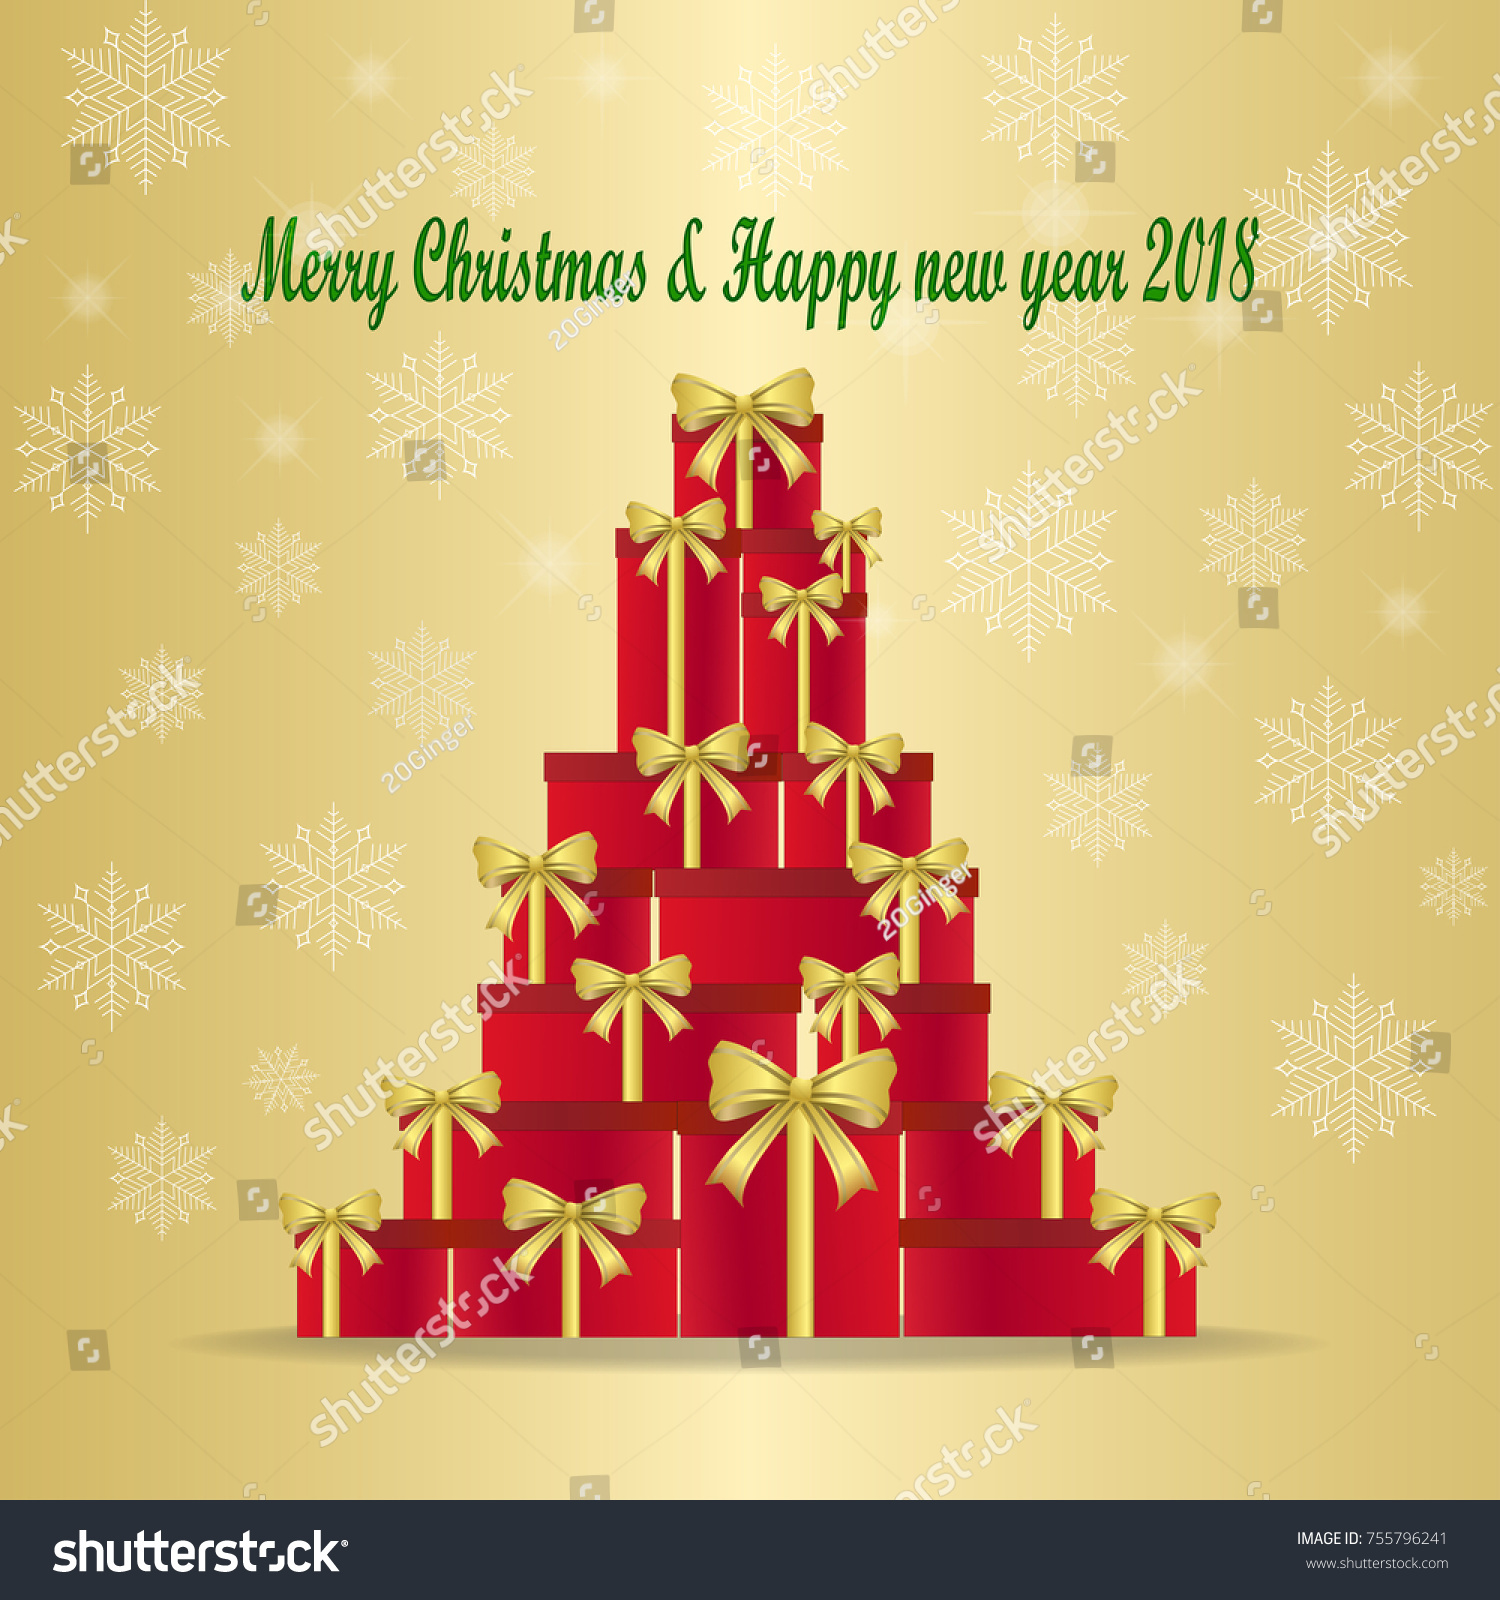 Red gift box gold bow words stock vector 755796241 shutterstock red gift box with gold bow and words merry christmas happy new year 2018 kristyandbryce Choice Image